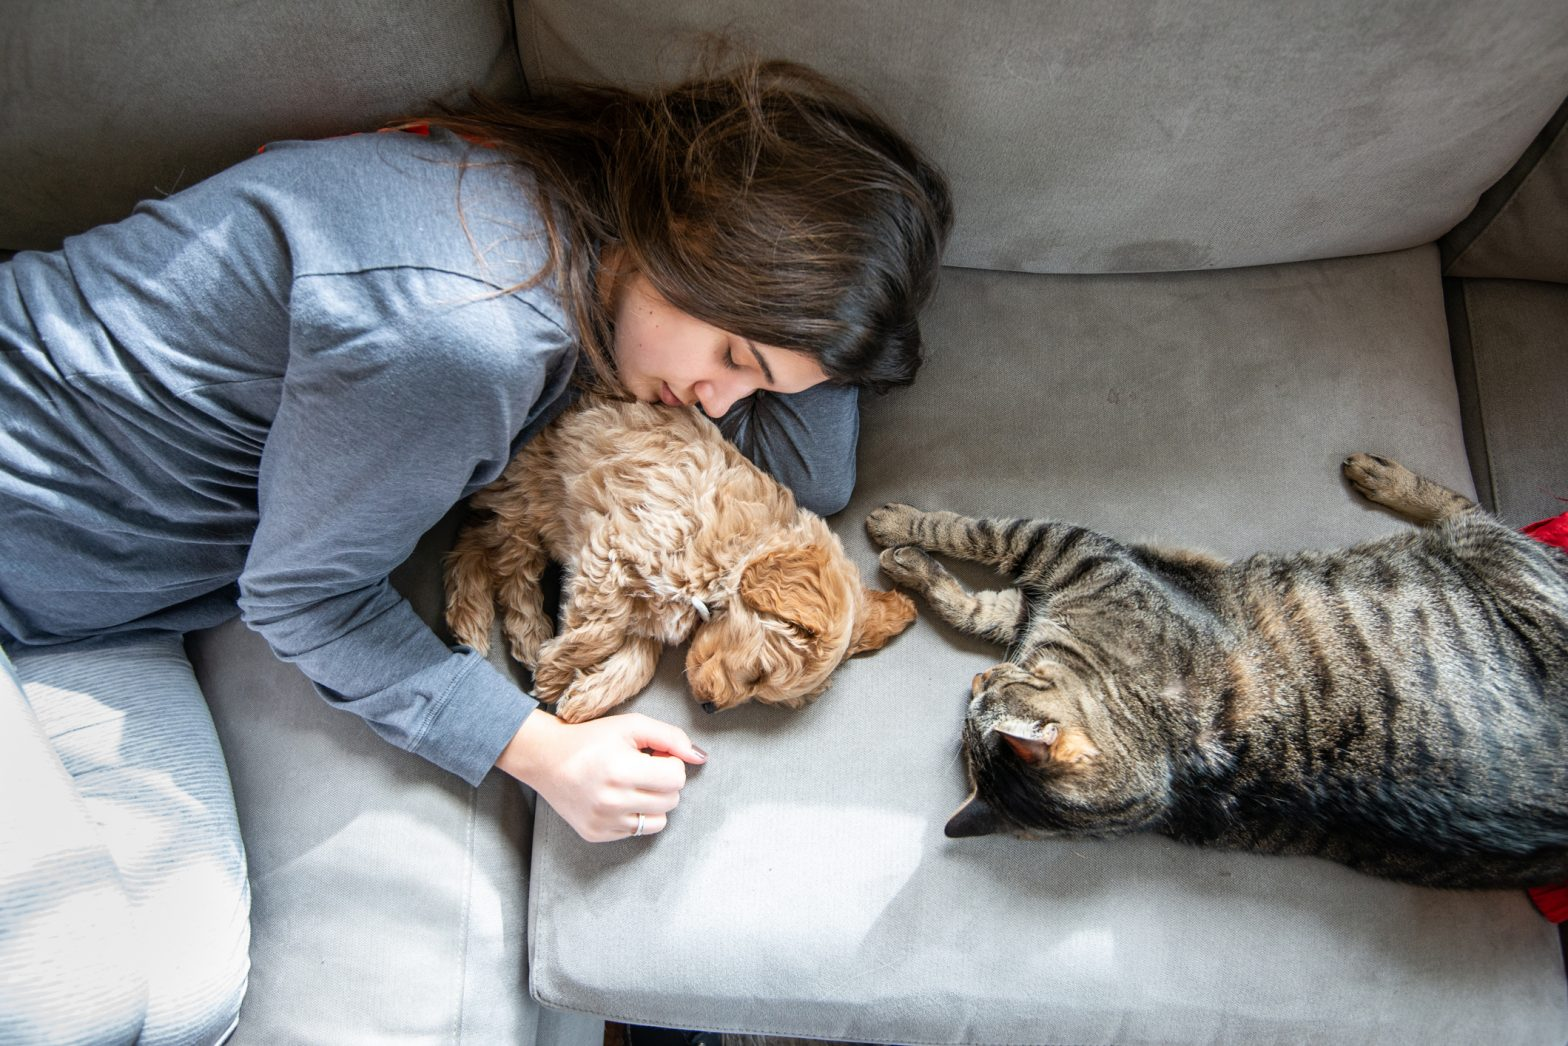 A woman sleeping on the couch with a dog and cat.